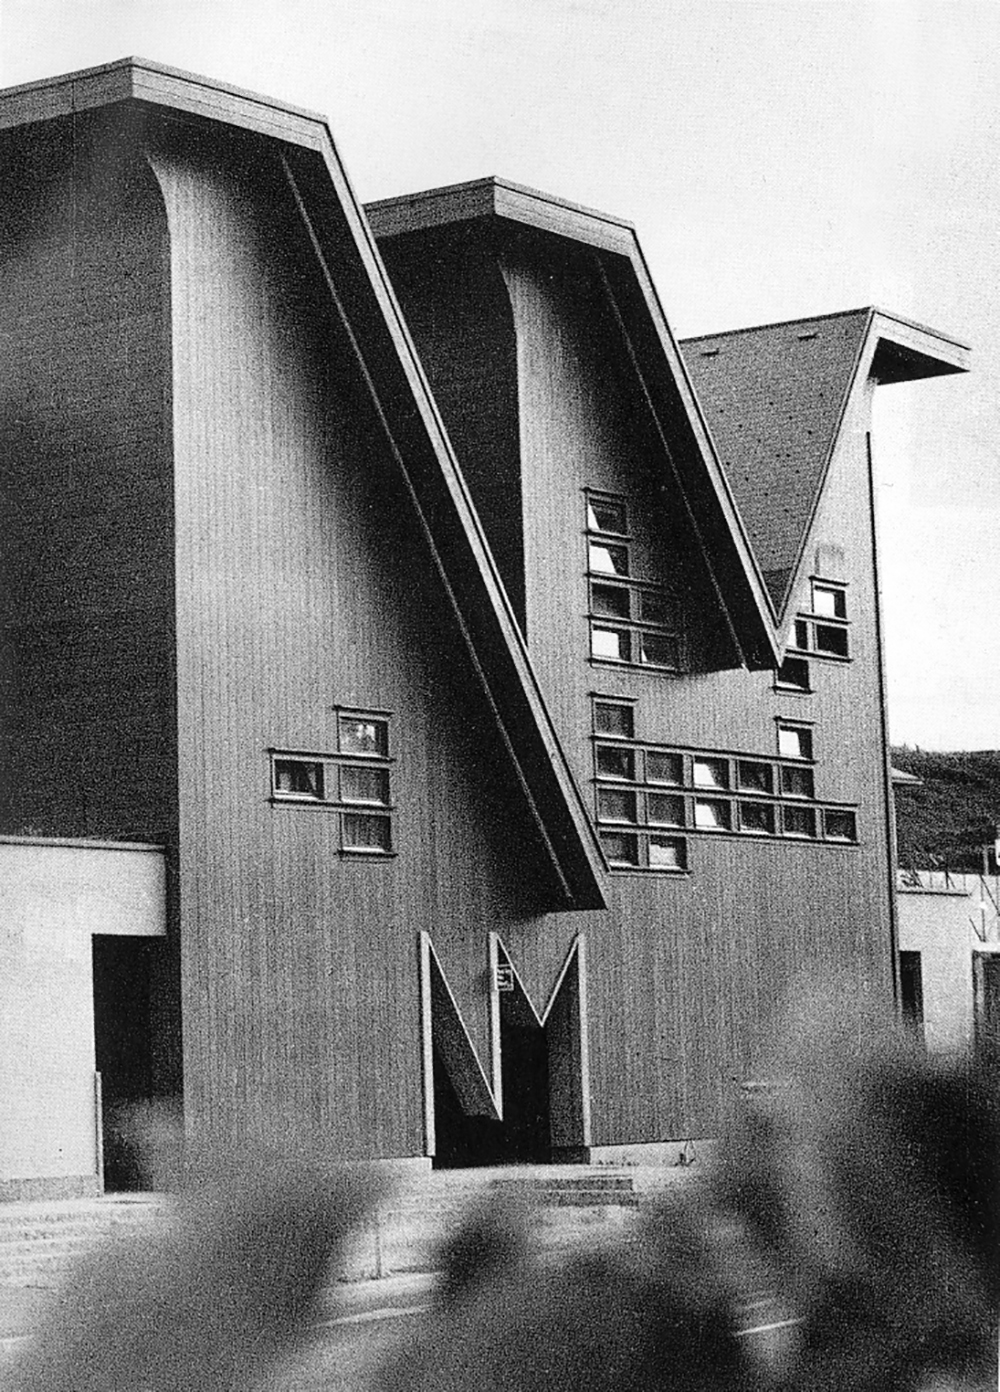 Bus Station, Novo mesto, first prize at a competition and execution, 1989–1992. Author: Marko Mušič